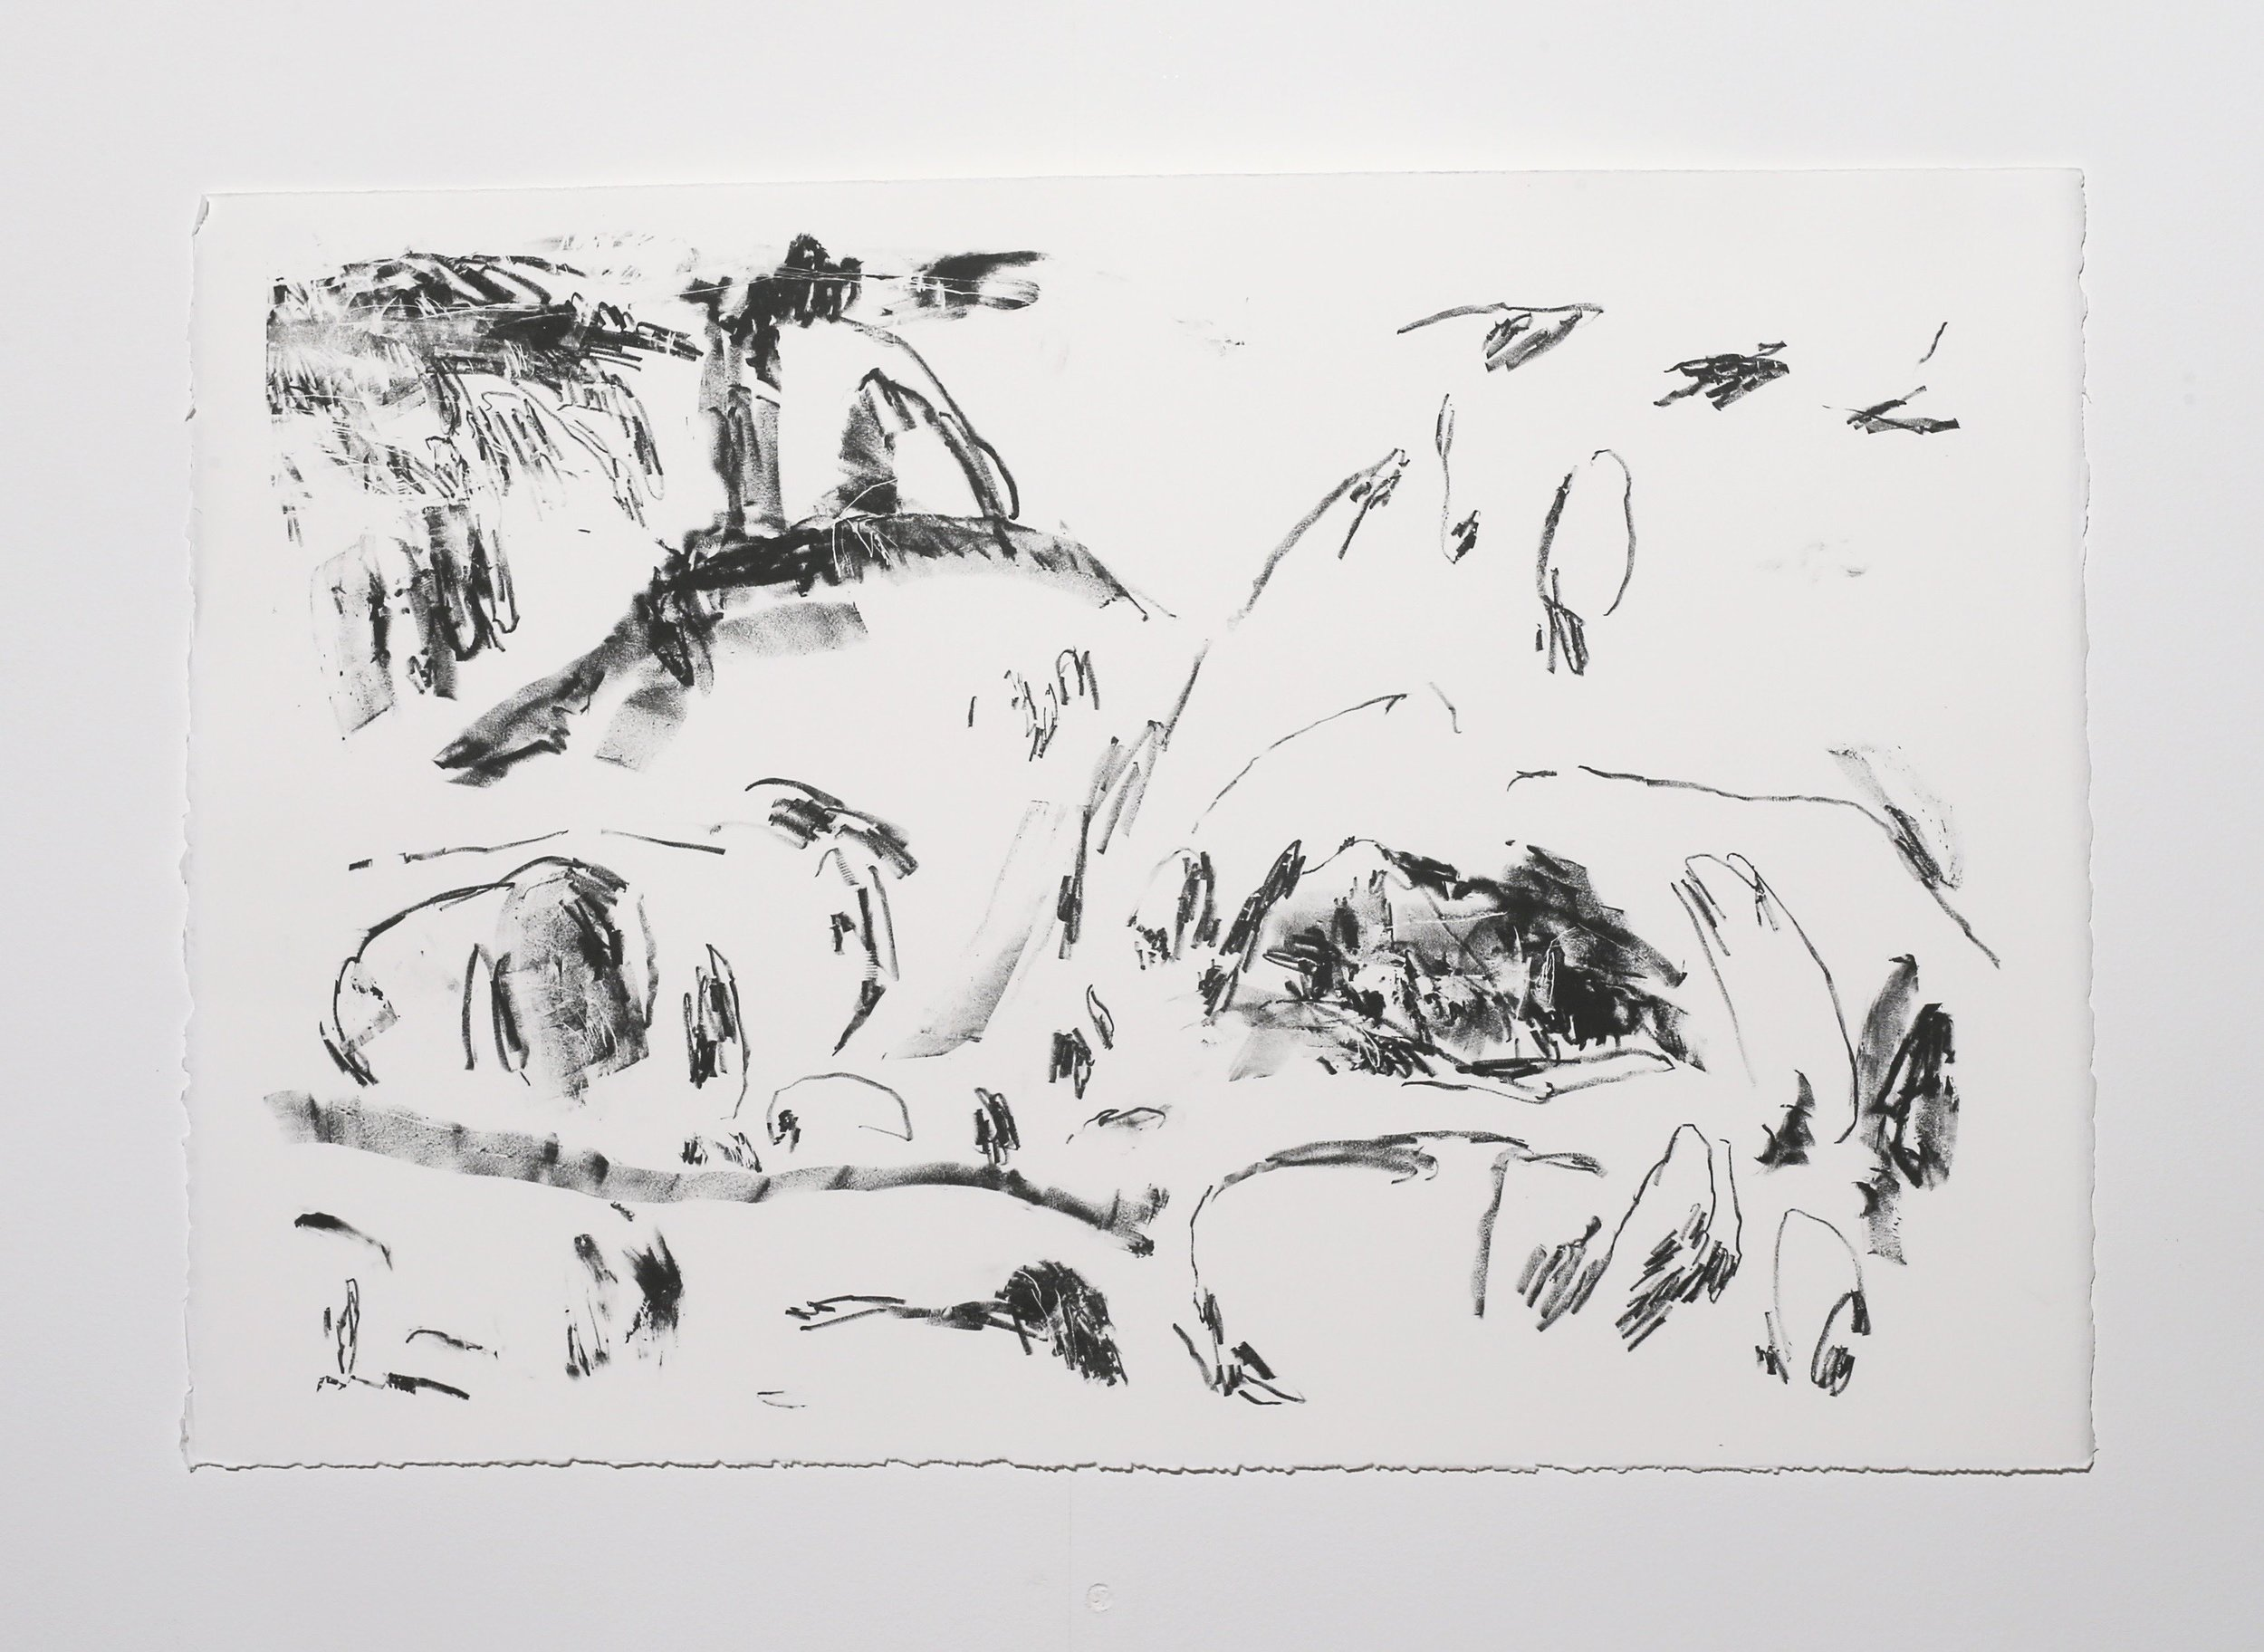 Scene I , 2019, lithograph on paper, 38 x 56.5 cm (paper size) Edition of 2 $250